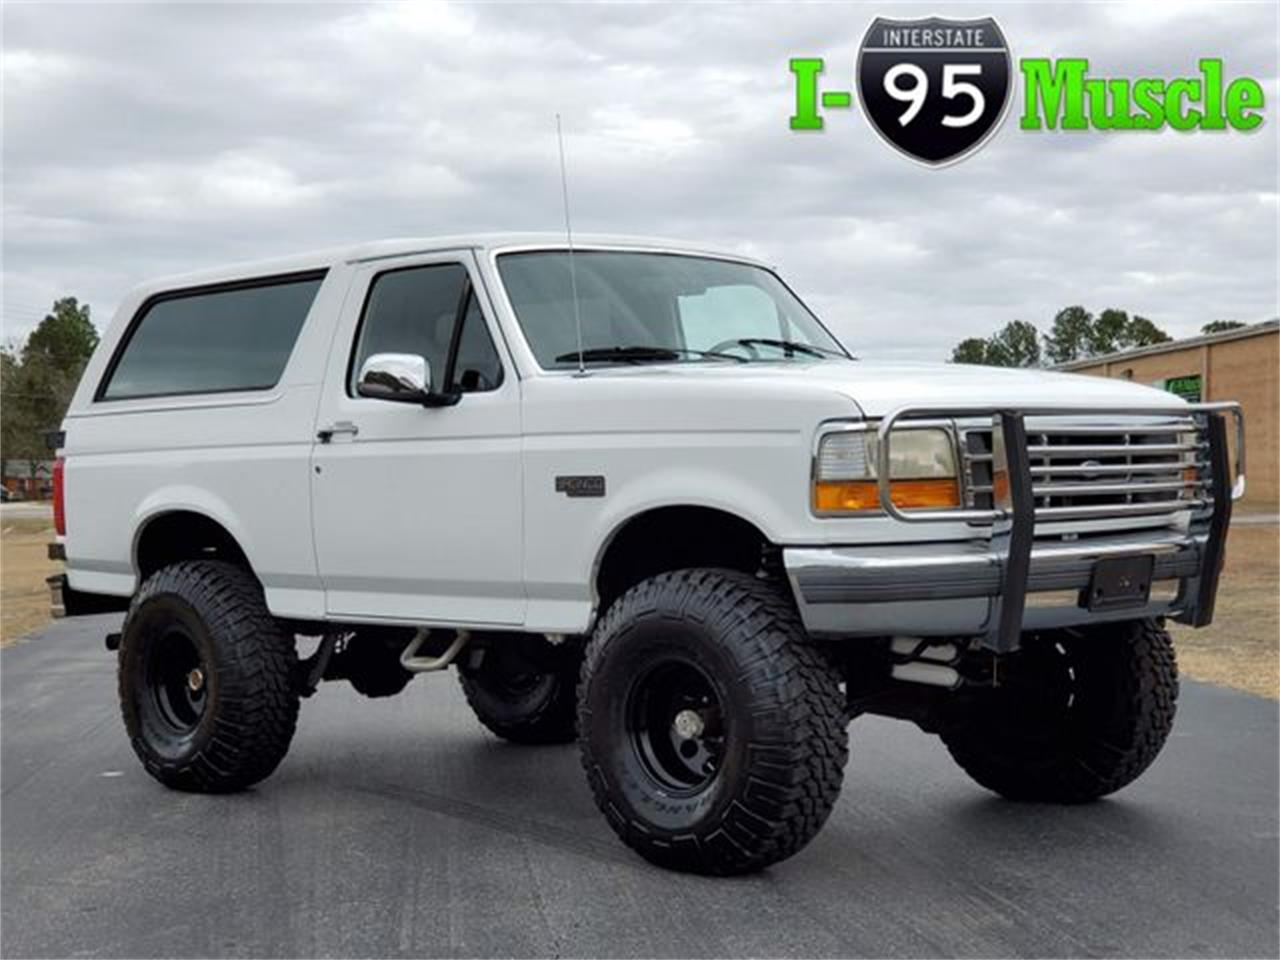 1994 ford bronco for sale classiccars com cc 1311497 1994 ford bronco for sale classiccars